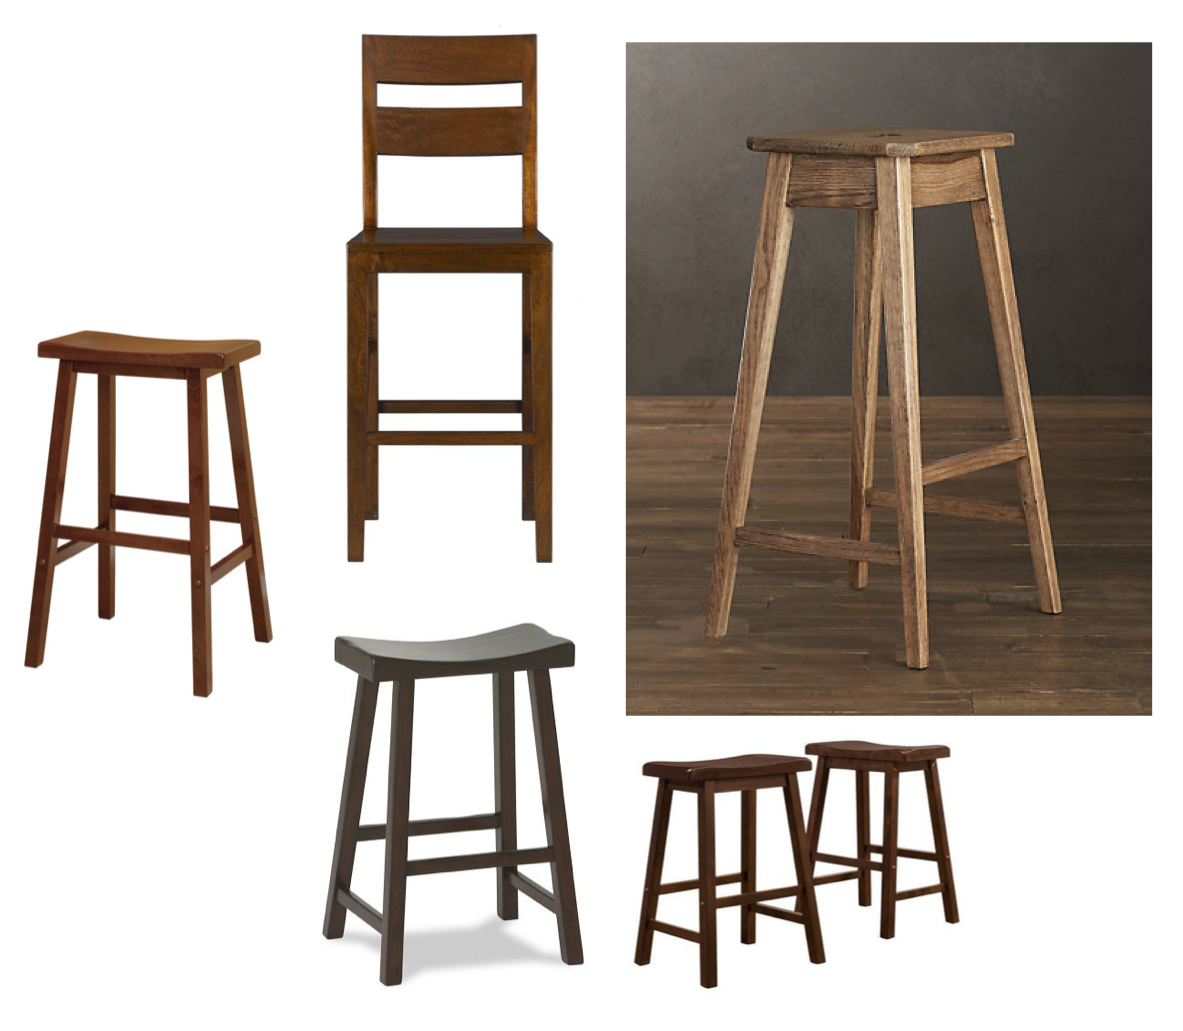 Wooden Build Your Own Bar Stool Kit Pdf Plans